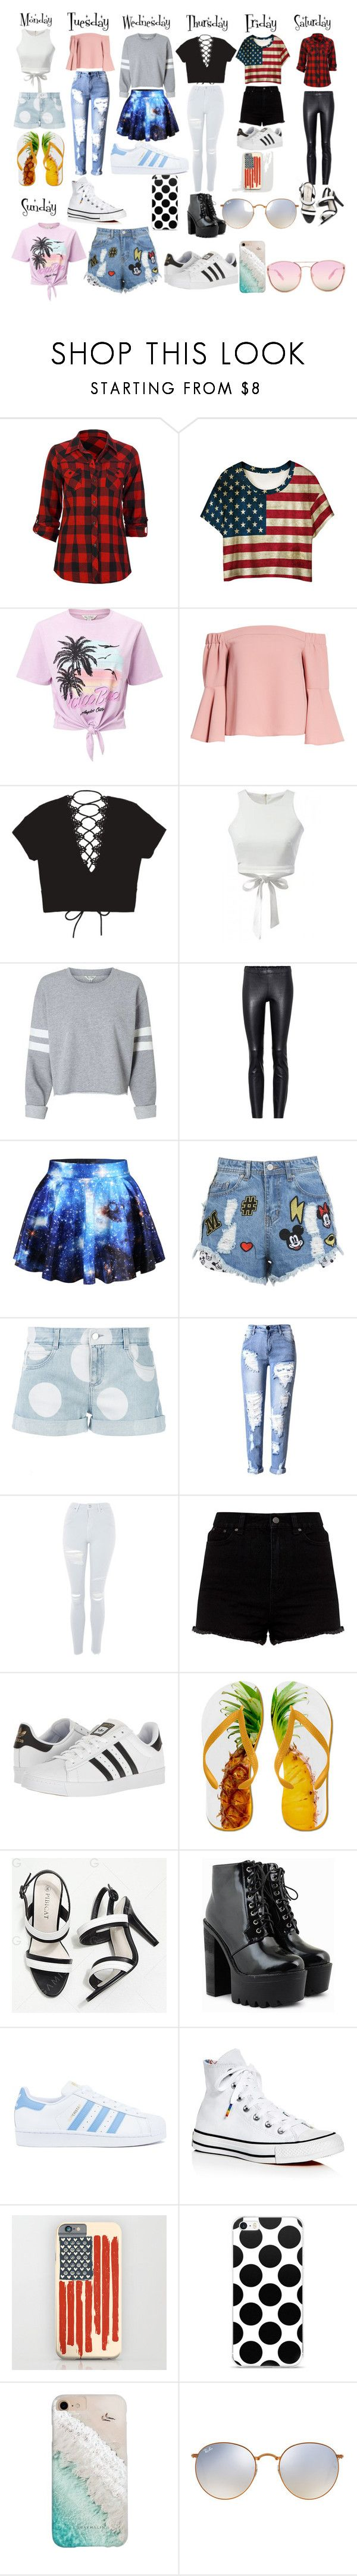 """""""outfits for the week"""" by andieok on Polyvore featuring Full Tilt, WithChic, Miss Selfridge, Topshop, STOULS, Disney Stars Studios, STELLA McCARTNEY, adidas, Converse and Gray Malin"""